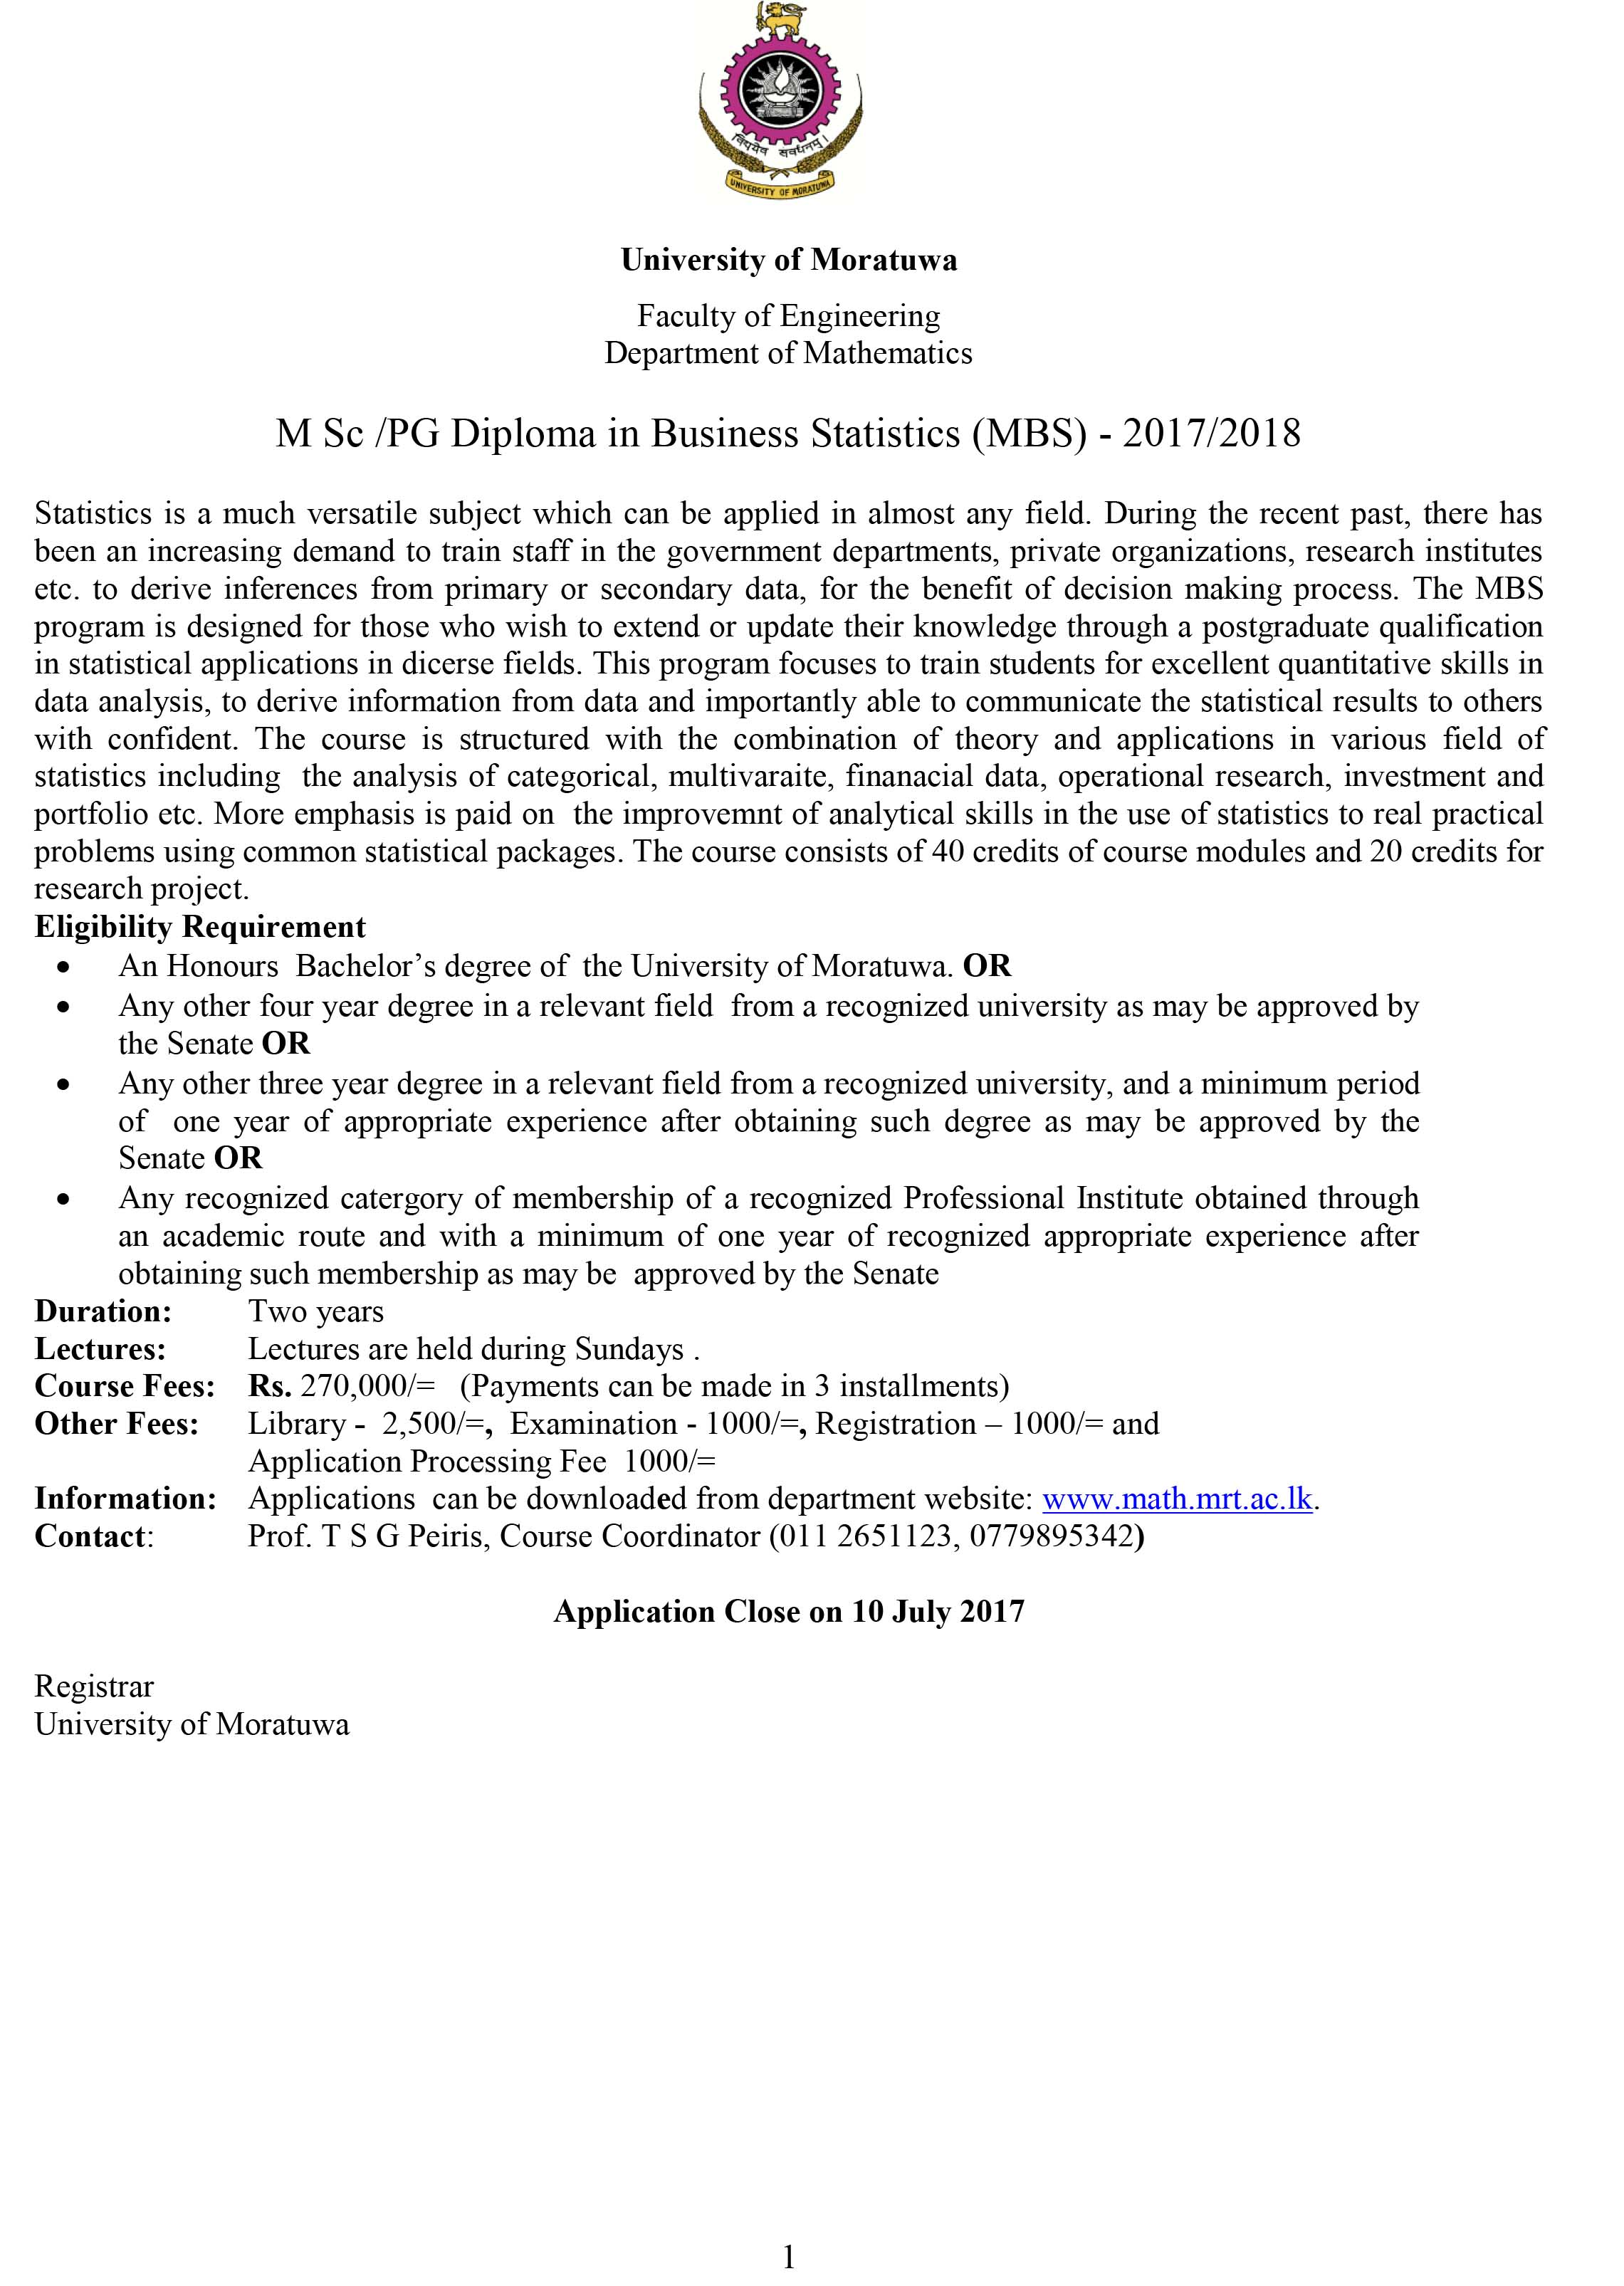 MSc / PG Diploma in Business Statistics (MBS) - 2017/2018